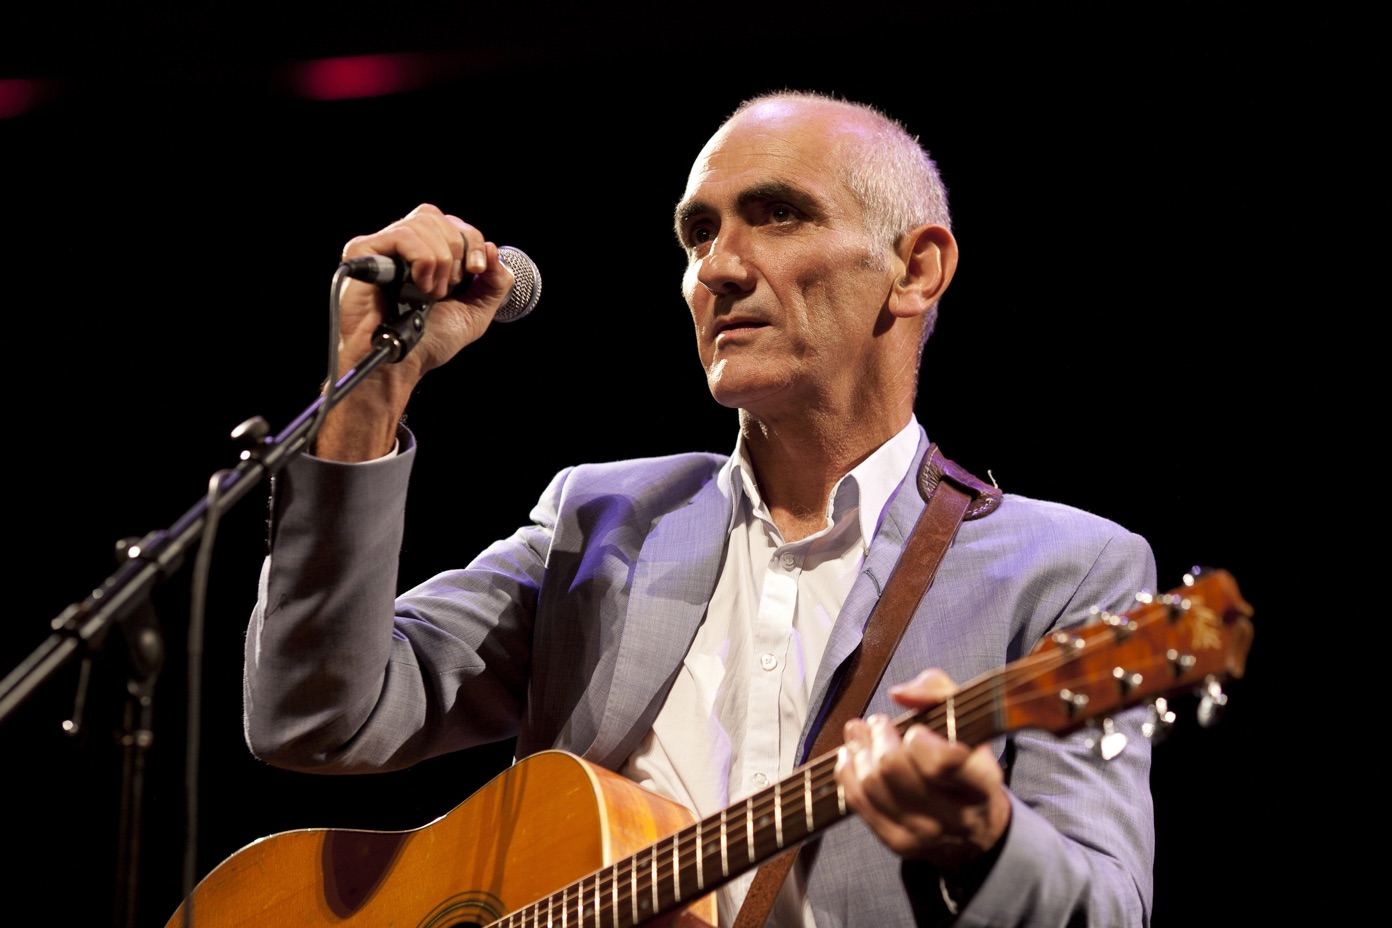 paul kelly - photo #8